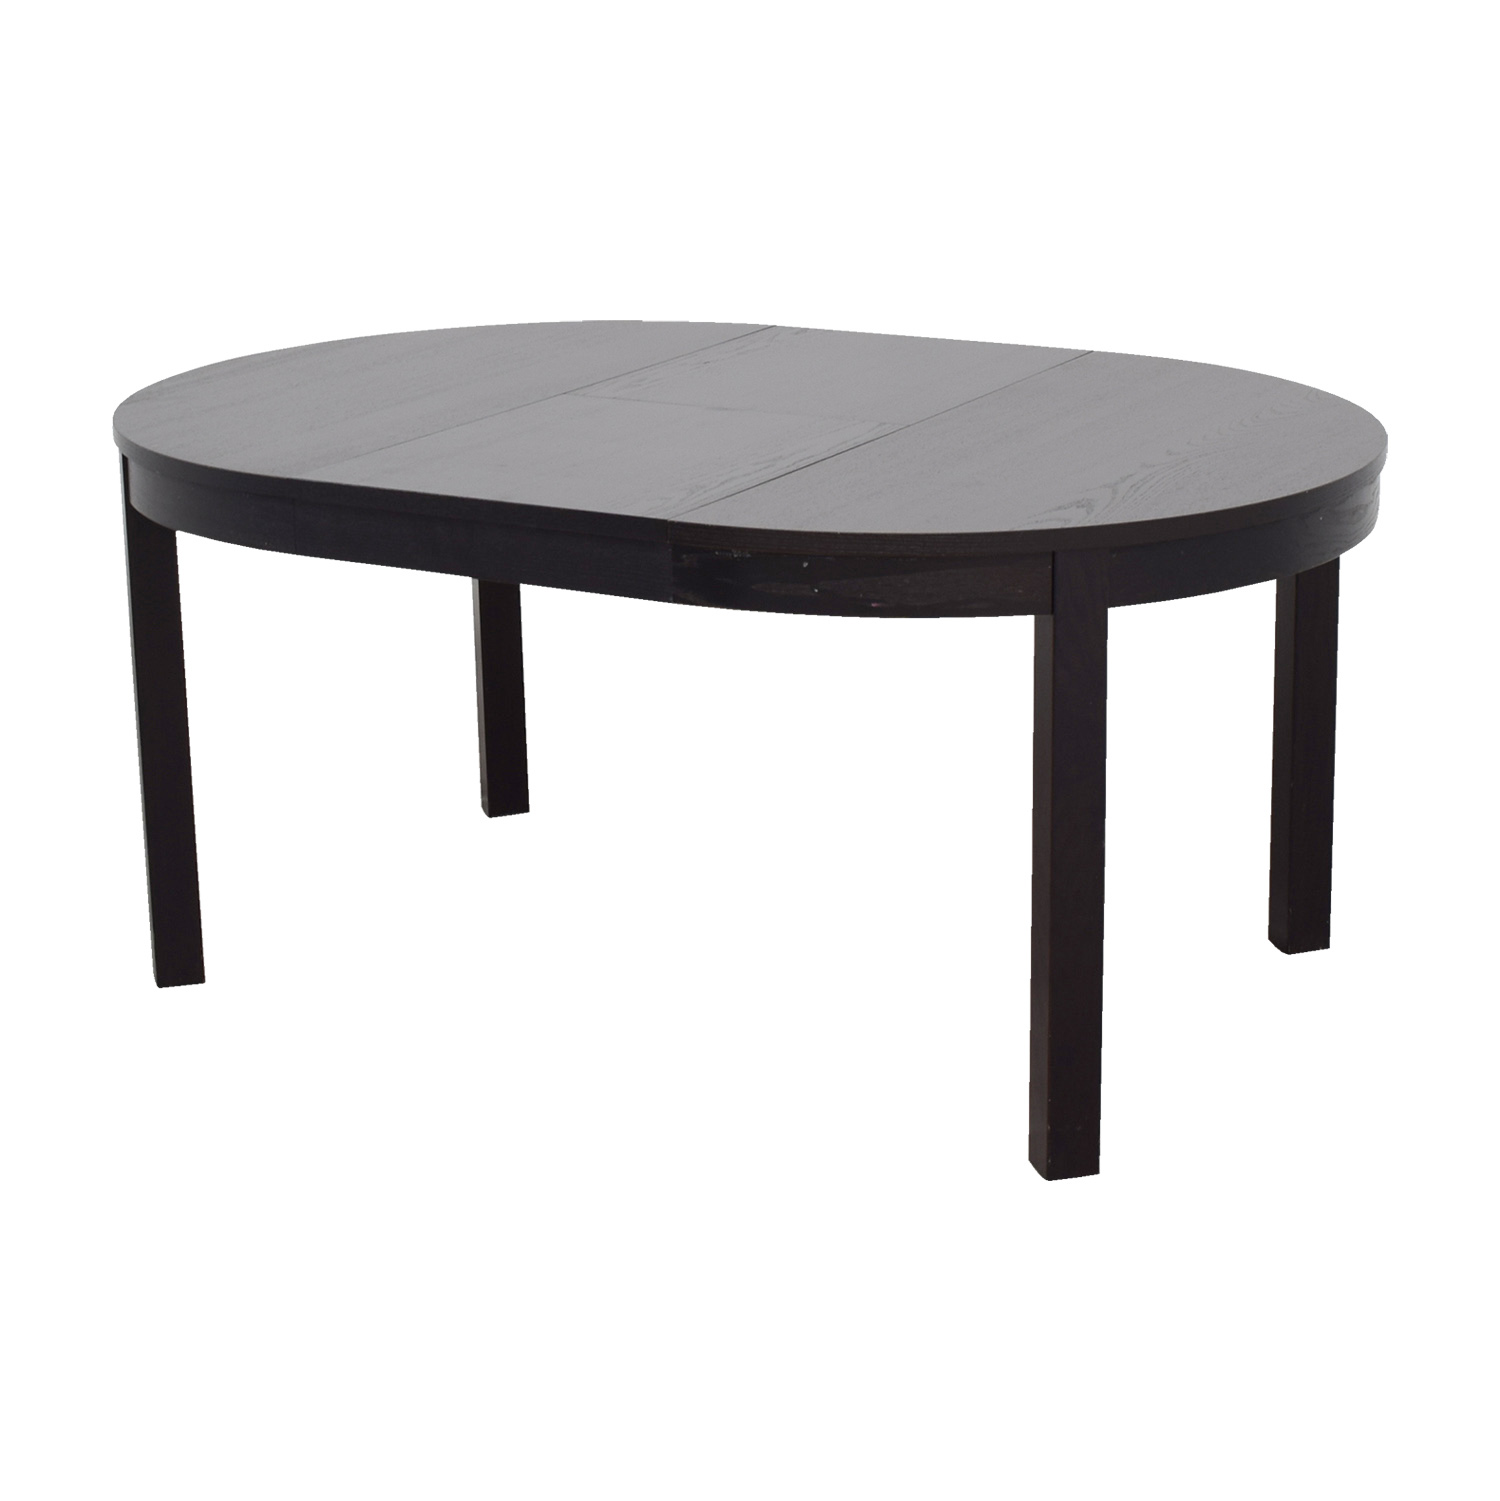 68 Off Ikea Ikea Bjursta Extendable Round To Oval Dining Table Tables